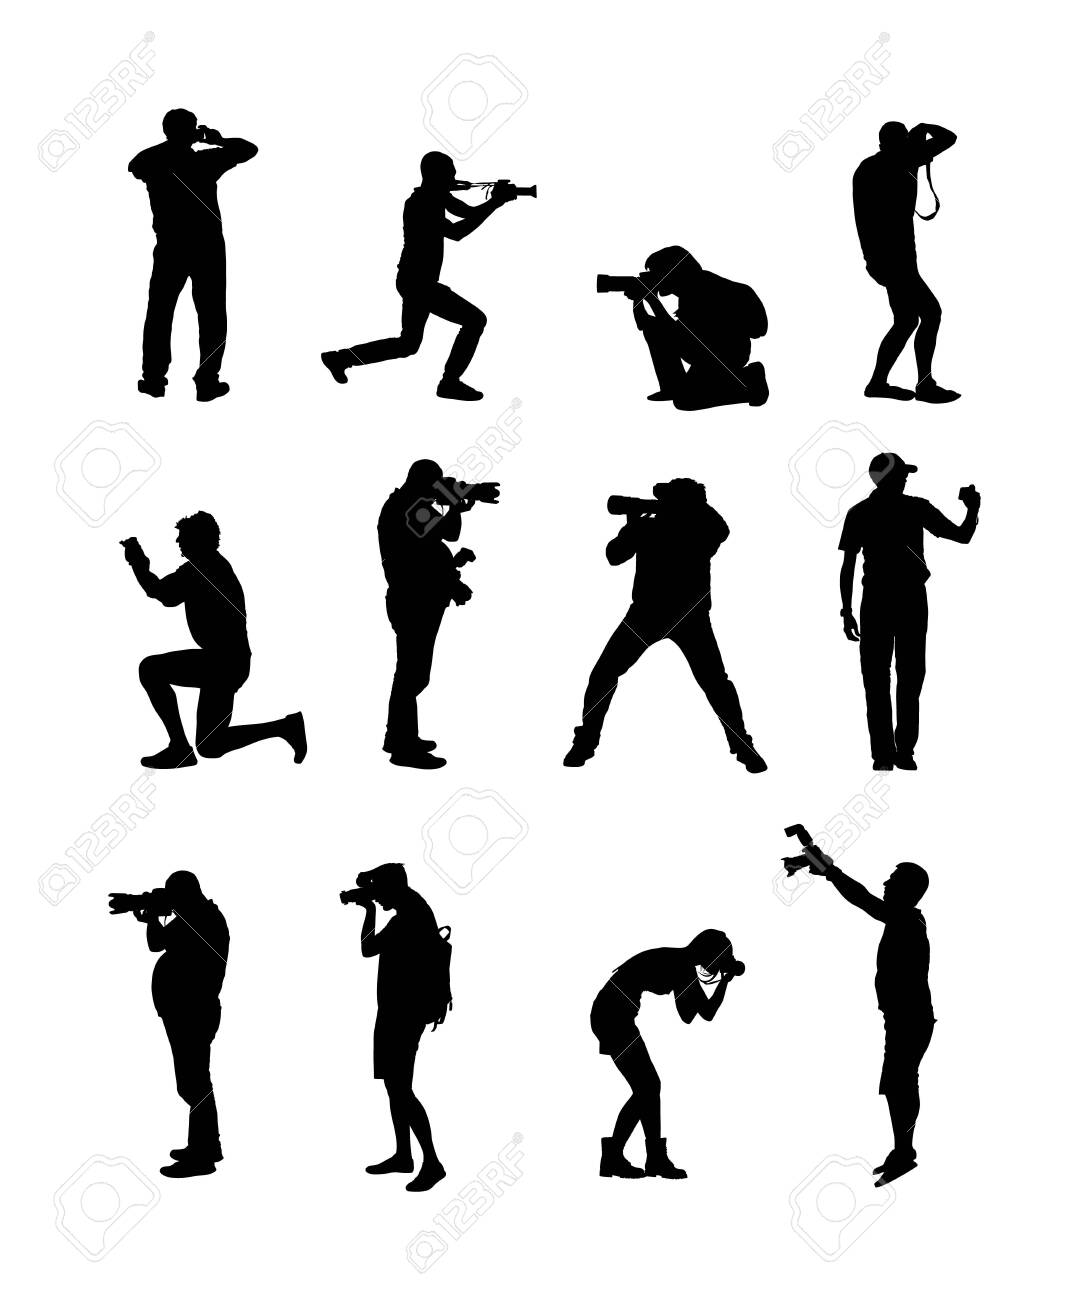 Collection of photographer with camera vector silhouette. Paparazzi shooting movie star event. Photo reporter on duty. Sport photography. Journalist work breaking news. Wedding fashion photographer. - 141538193